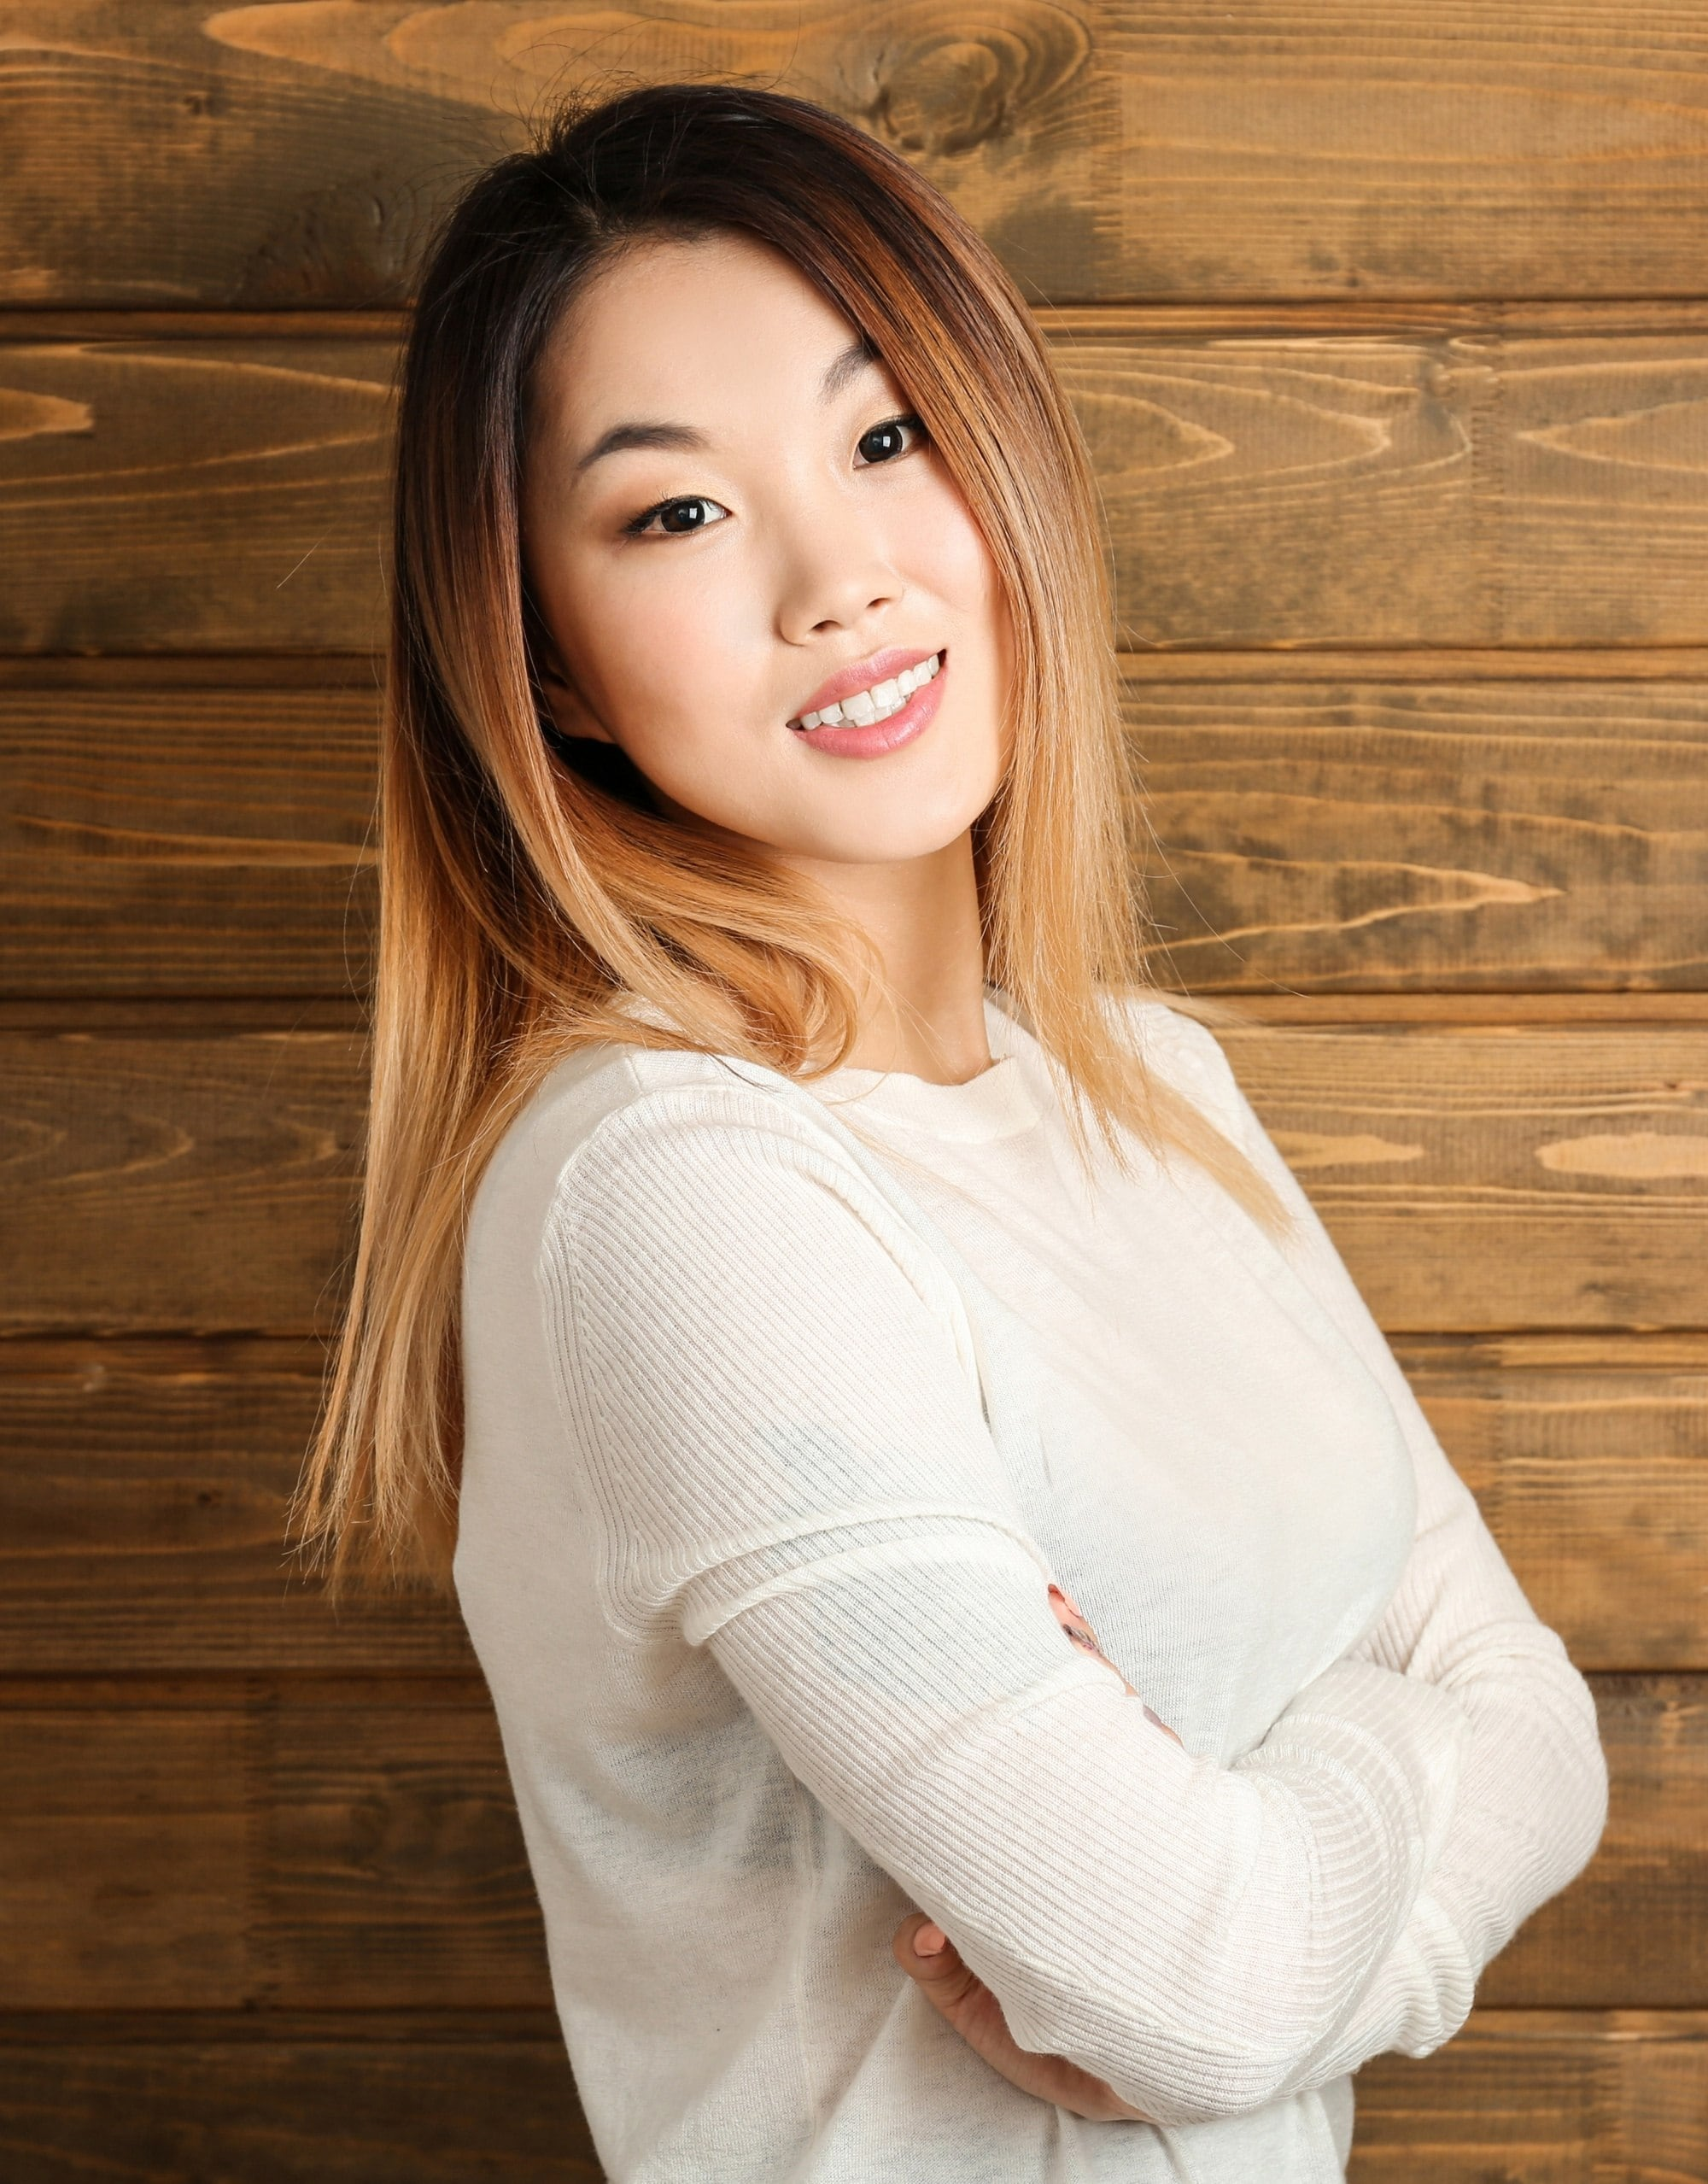 Golden brown hair color: Asian woman with long straight brown ombre hair wearing a white sweater against a wooden backdrop